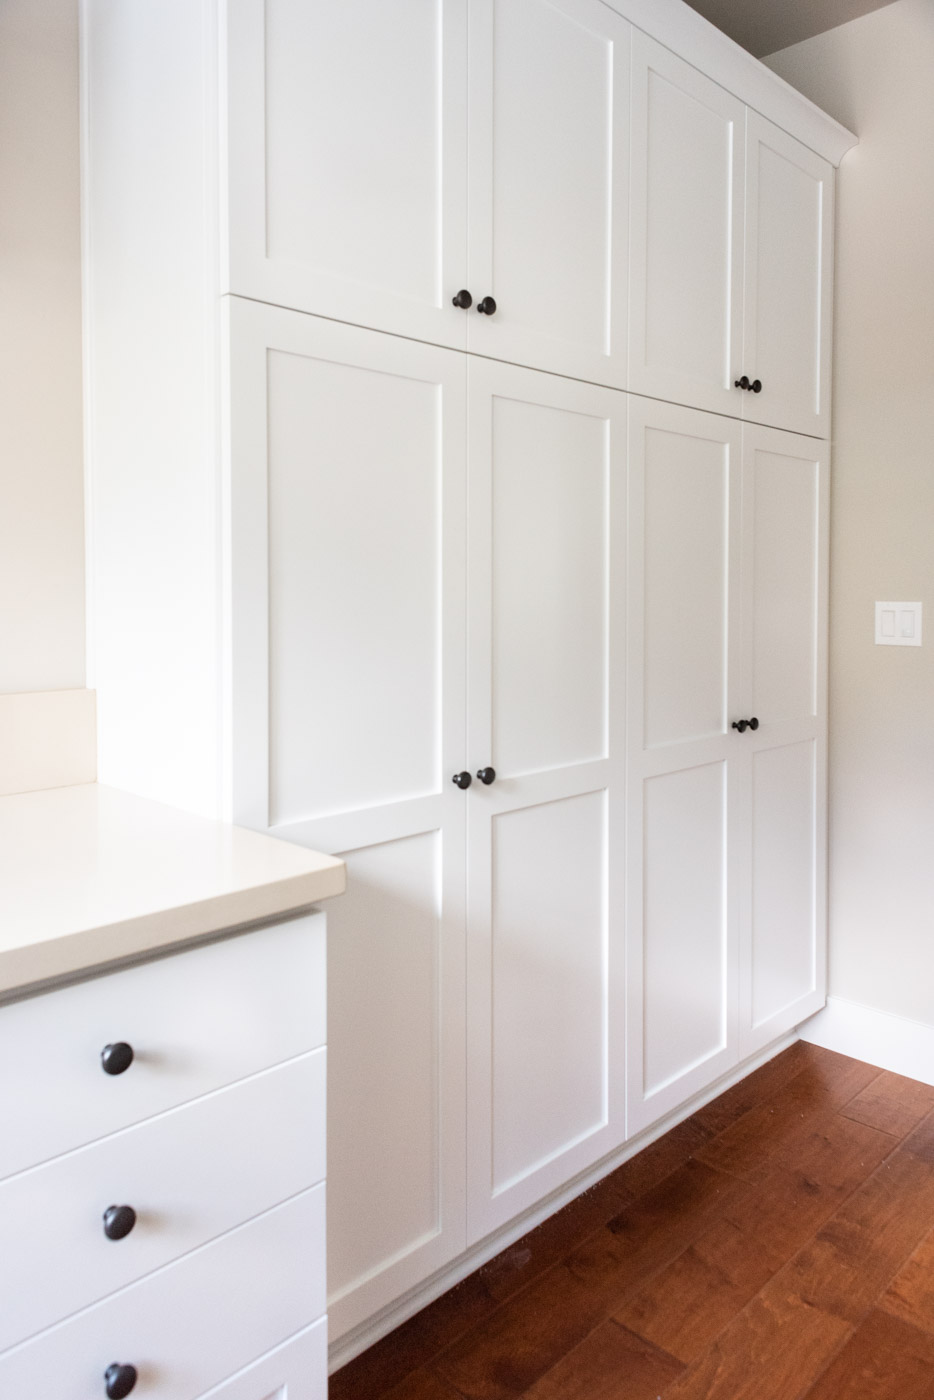 Coastal Craftsman home with custom white painted laundry room linen closet cabinets